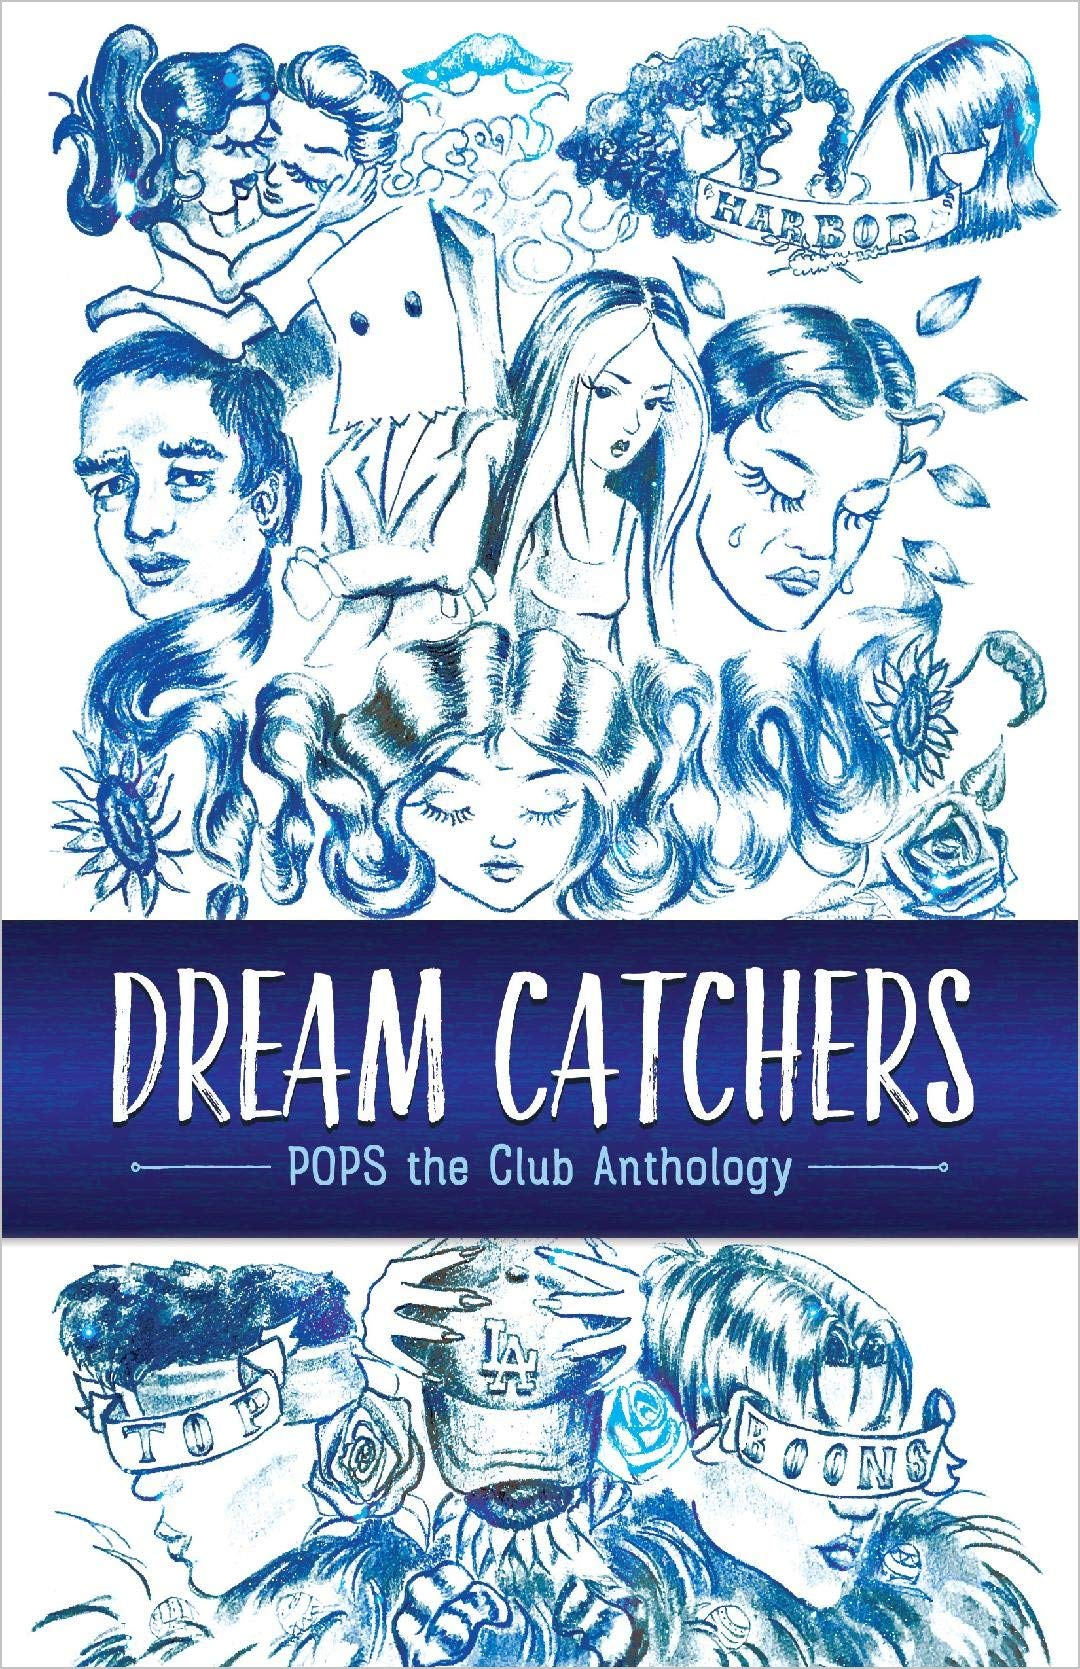 Dream Catchers: POPS the Club Anthology